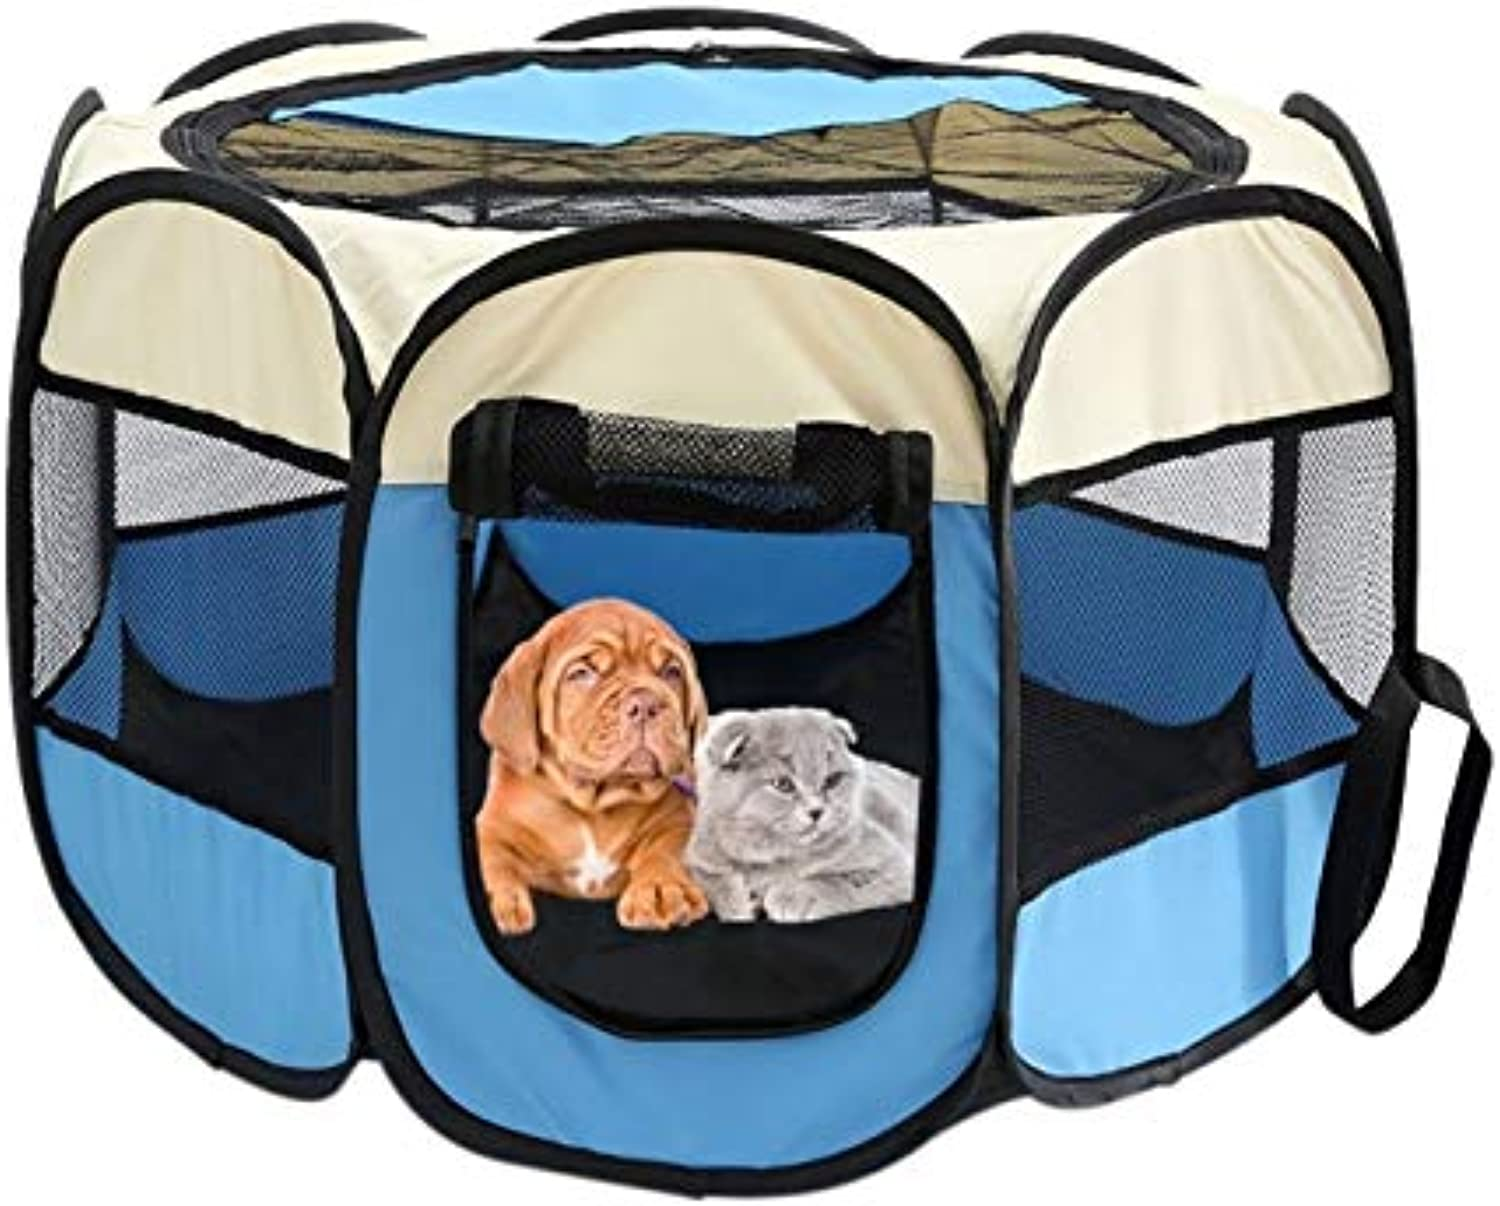 CARBE kennelPortable Folding Pet Carrier Tent Playpen Dog Fence Puppy Kennel Large Space Foldable Exercise Play In House Or Outdoor